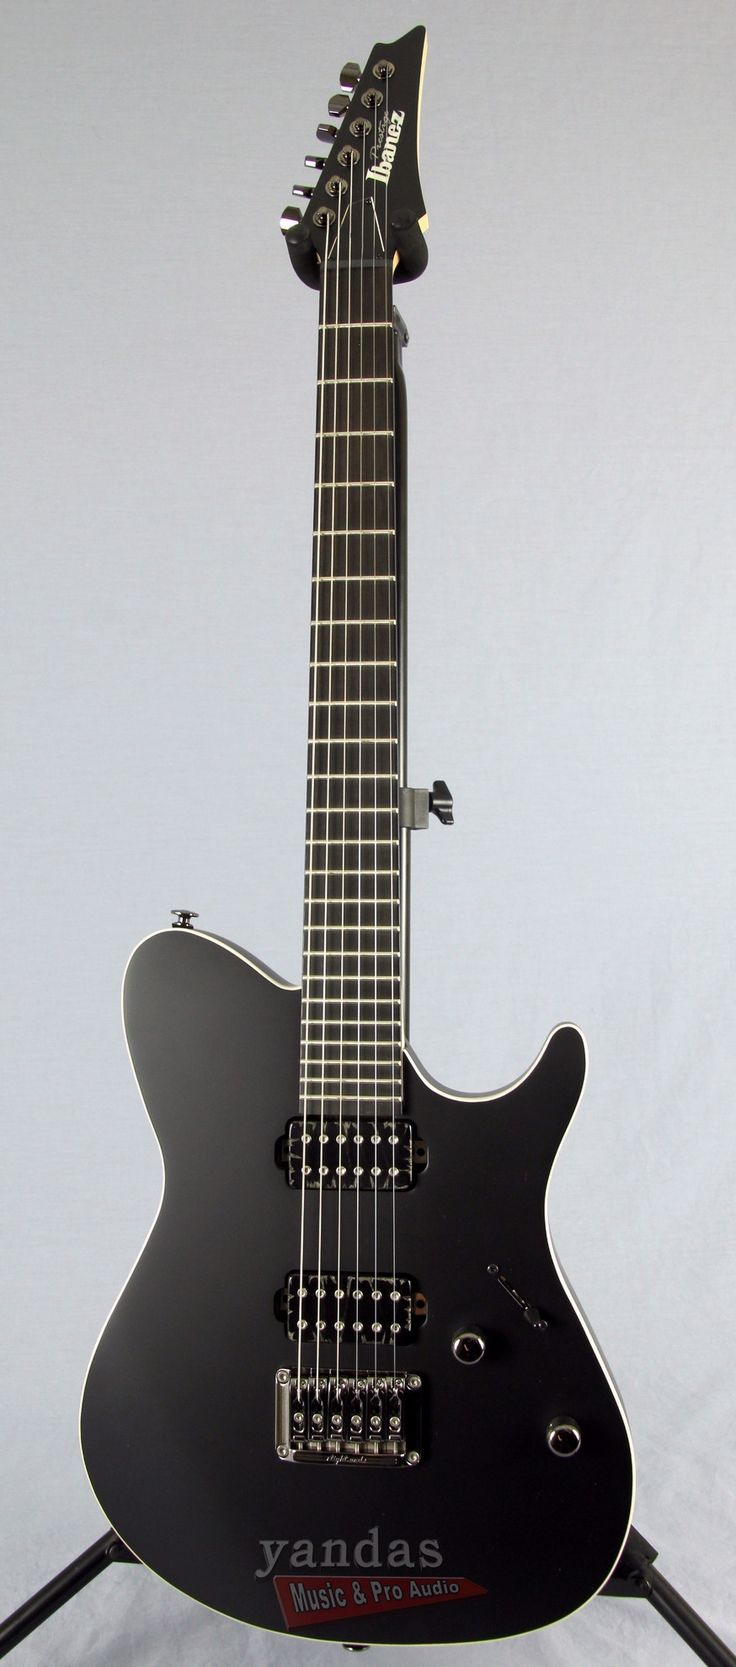 1000 ideas about guitar tuners on pinterest acoustic guitar tuner guitar and machine head. Black Bedroom Furniture Sets. Home Design Ideas